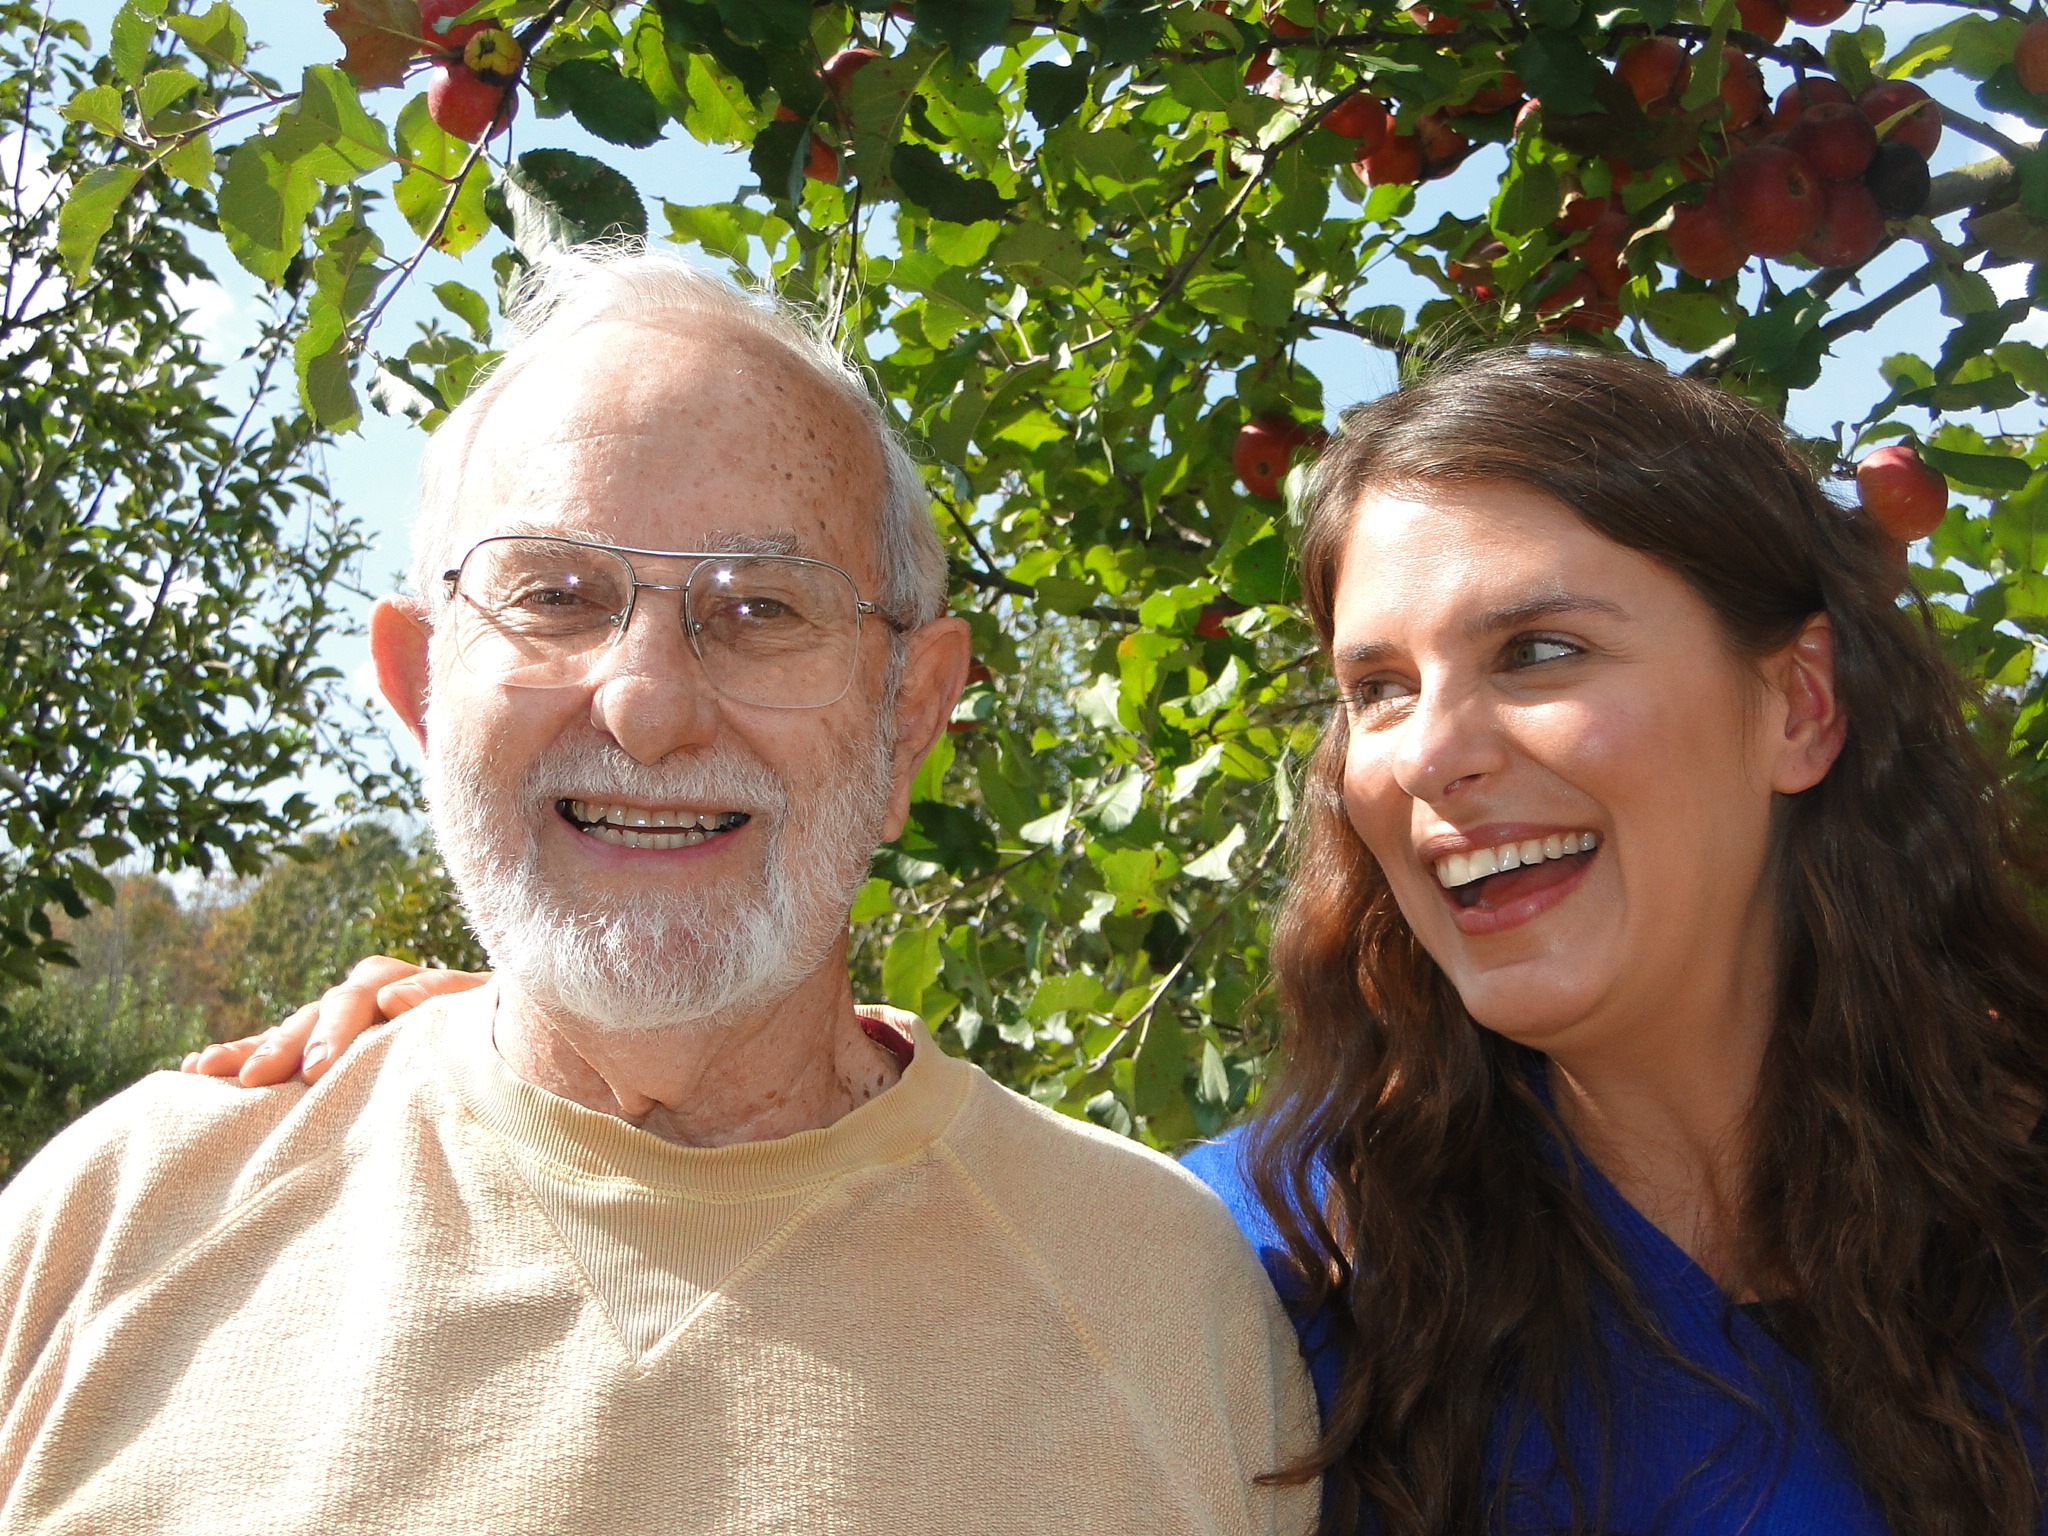 Lee Calhoun, with white hair and beard, standing next to Vivian Howard who has long brown hair. Vivian is looking and smiling at Lee